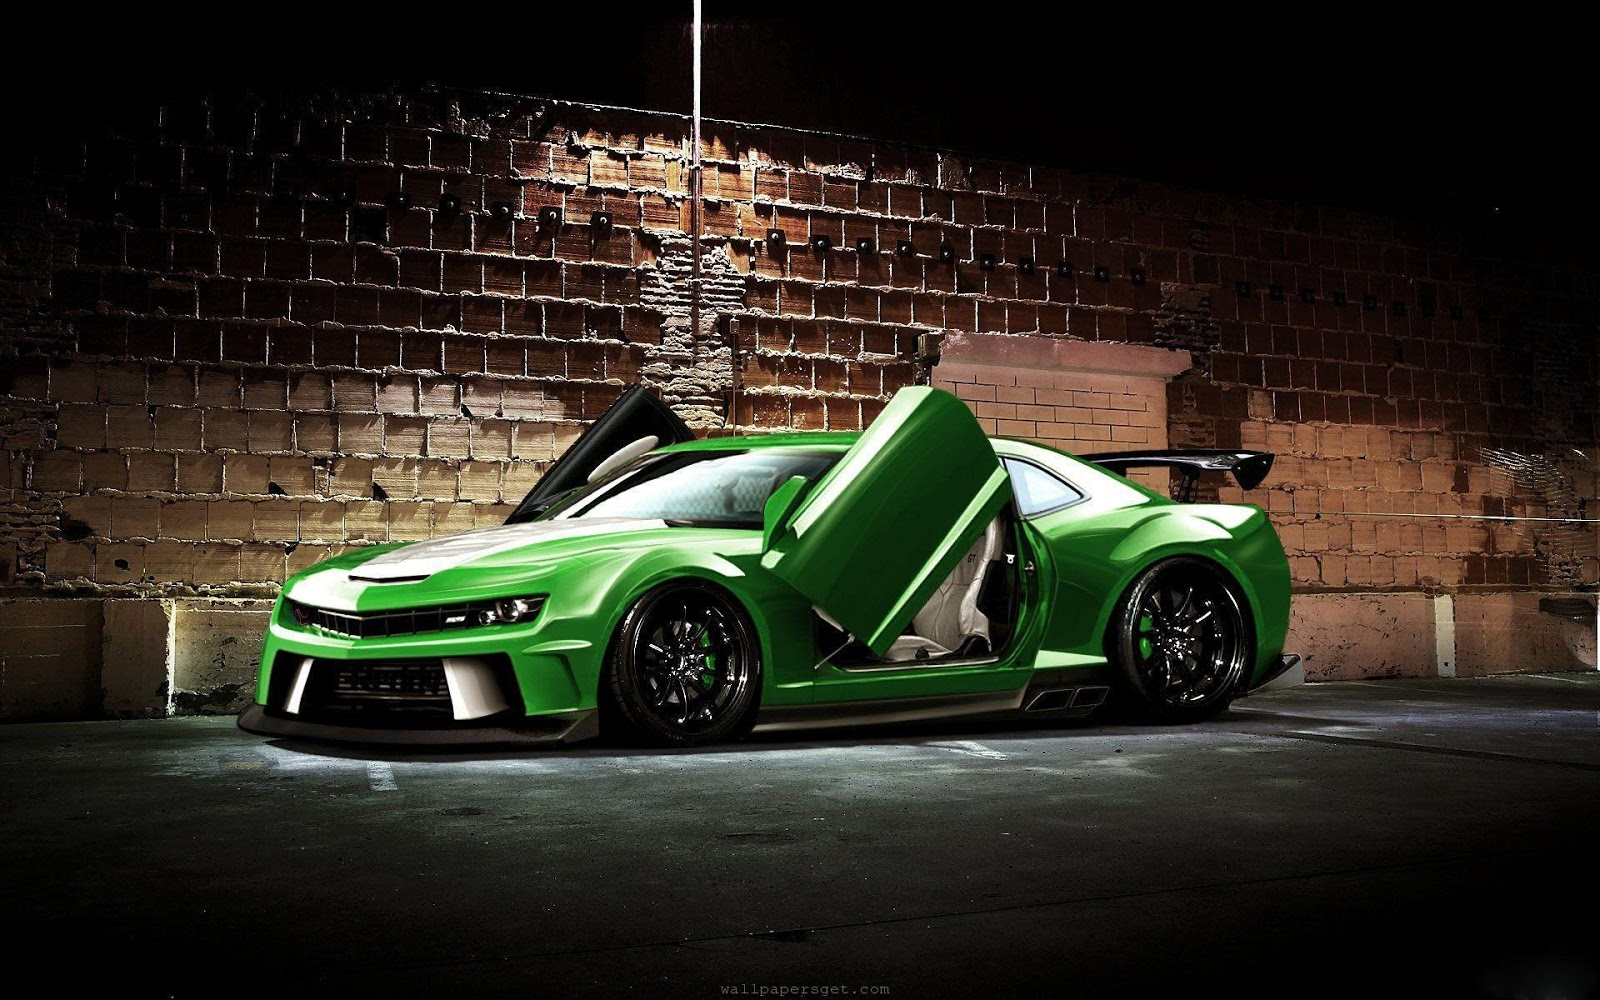 http://4.bp.blogspot.com/-A8m-a76vNzs/UPh9IttqRPI/AAAAAAAAPK4/HznQRX3MxM4/s1600/green-sports-car-modified-car-1200x1920.jpg